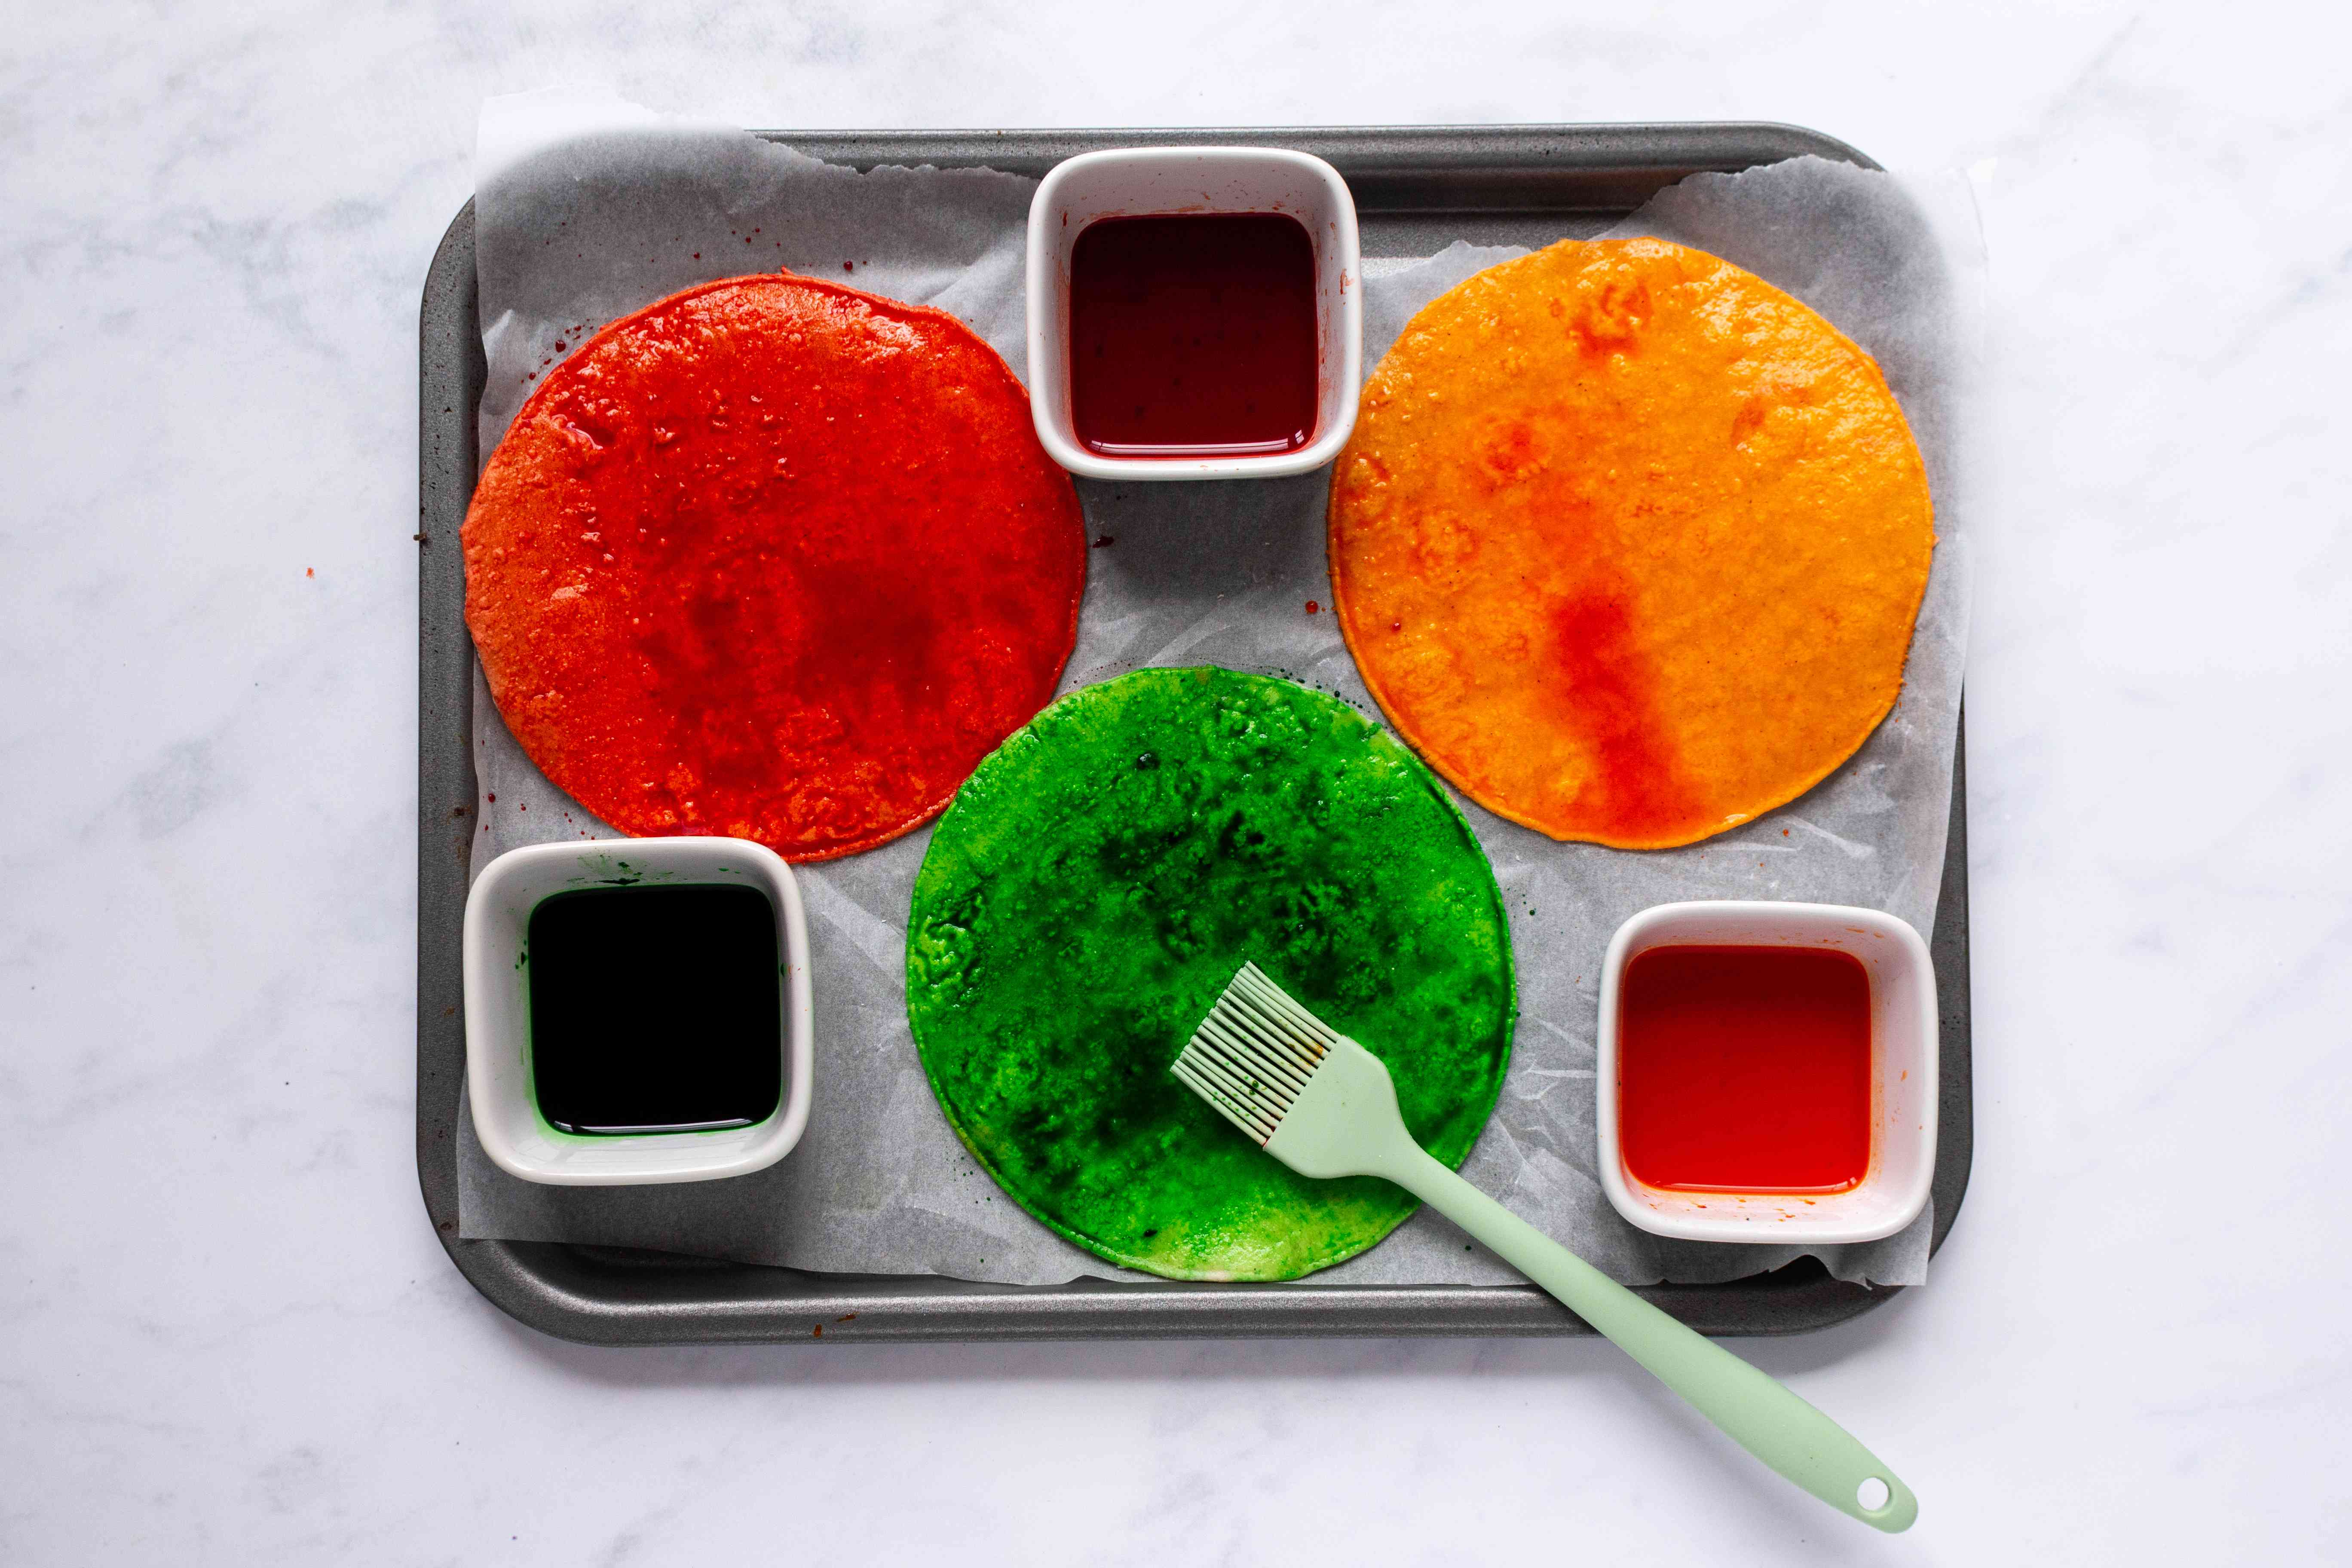 brush tortillas with food coloring on a baking sheet